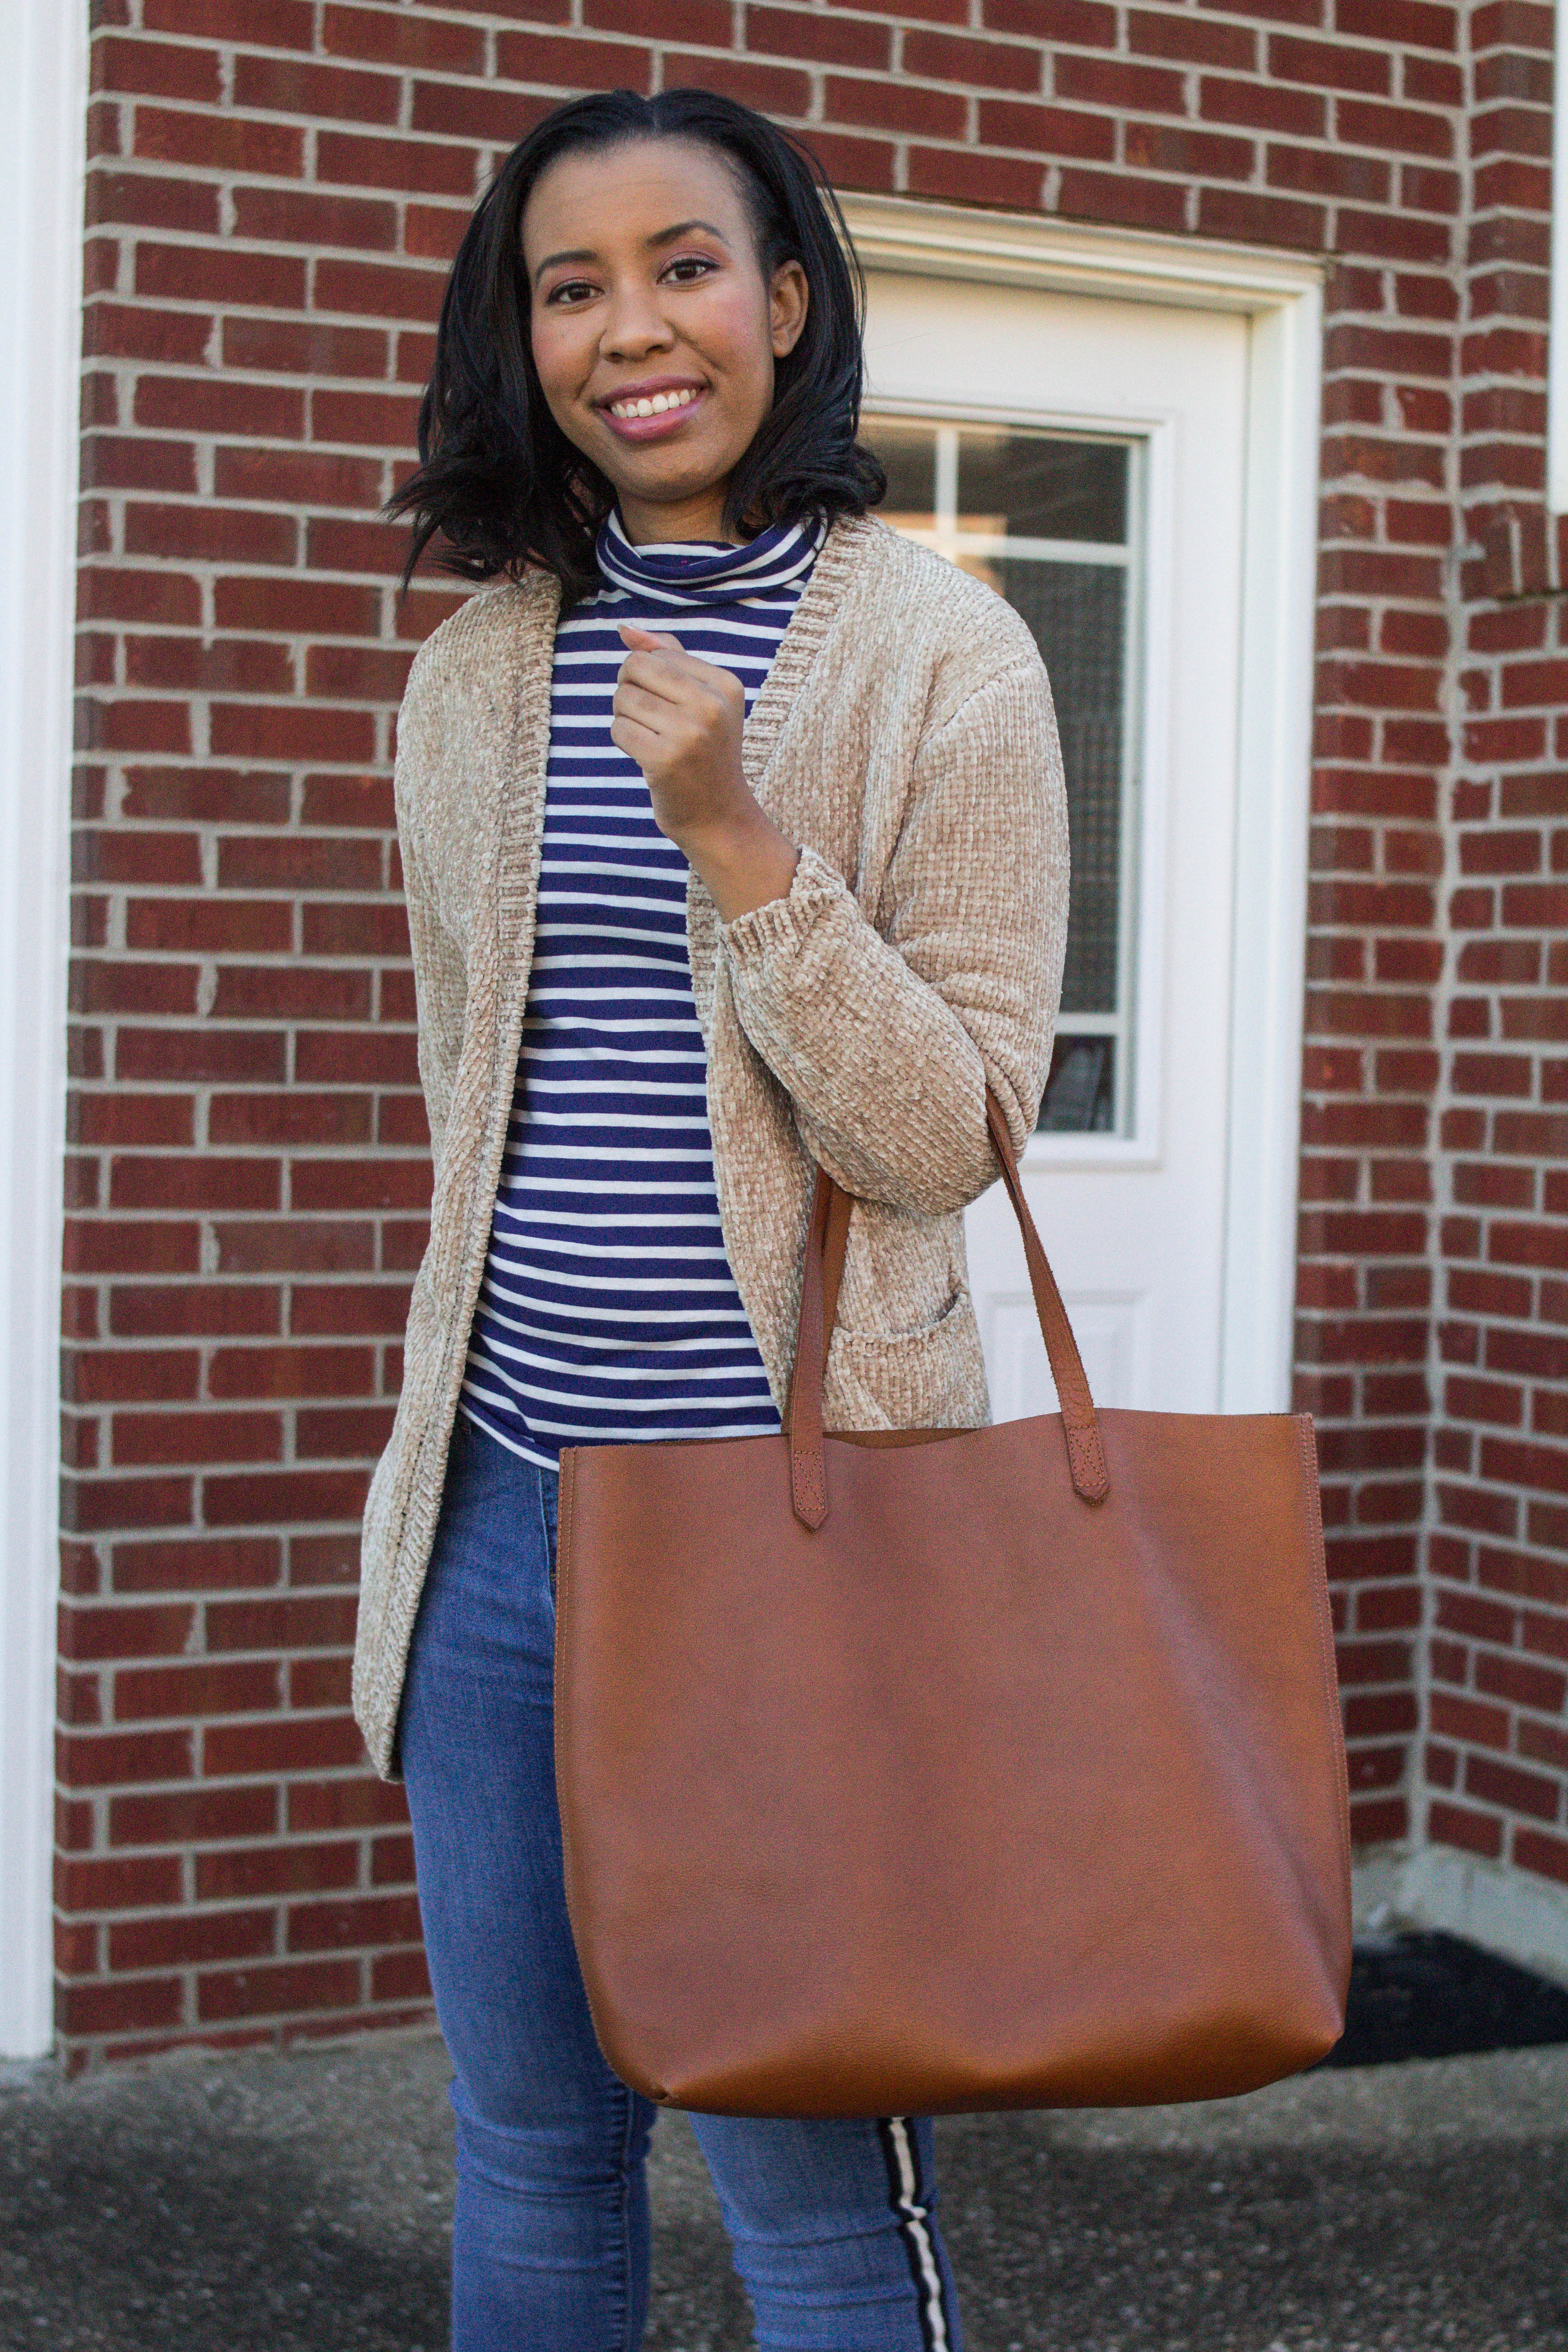 Popular style blogger, What Nicole Wore, shows how to take ten wardrobe staples and create twenty fall outfits with a fall capsule wardrobe. // naked cherry eyeshadow look, striped turtleneck, j crew tissue turtleneck, leather tote, carryall bag, madewell transport tote, beige cardigan outfit ideas, everyday outfits capsule wardrobe